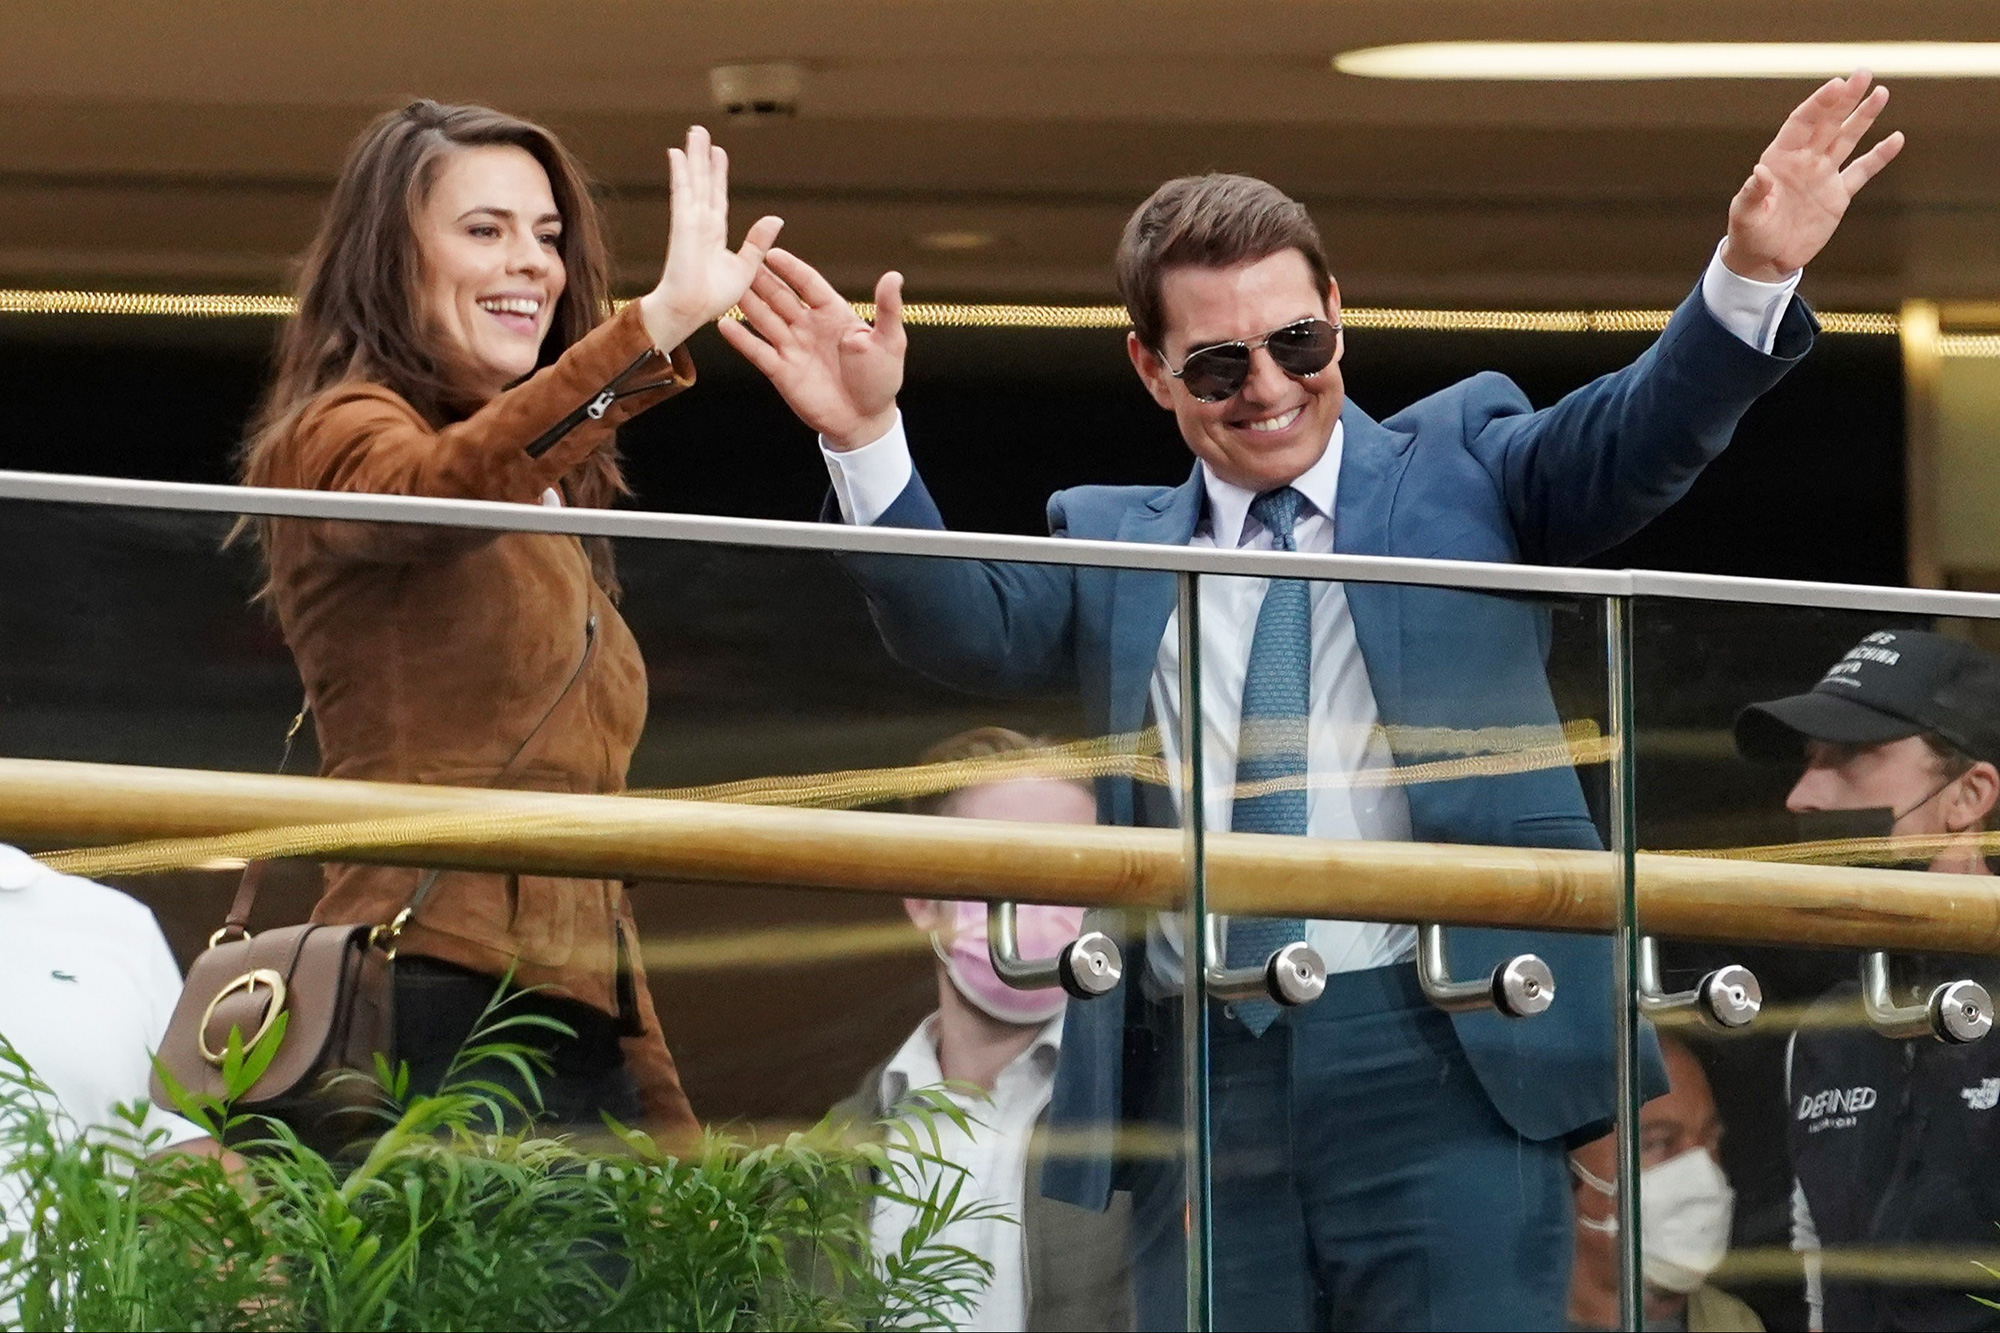 Tom Cruise and Hayley Atwell film scenes for Mission Impossible 7 in the Grand Central shopping centre in Birmingham today (24/8/21.)